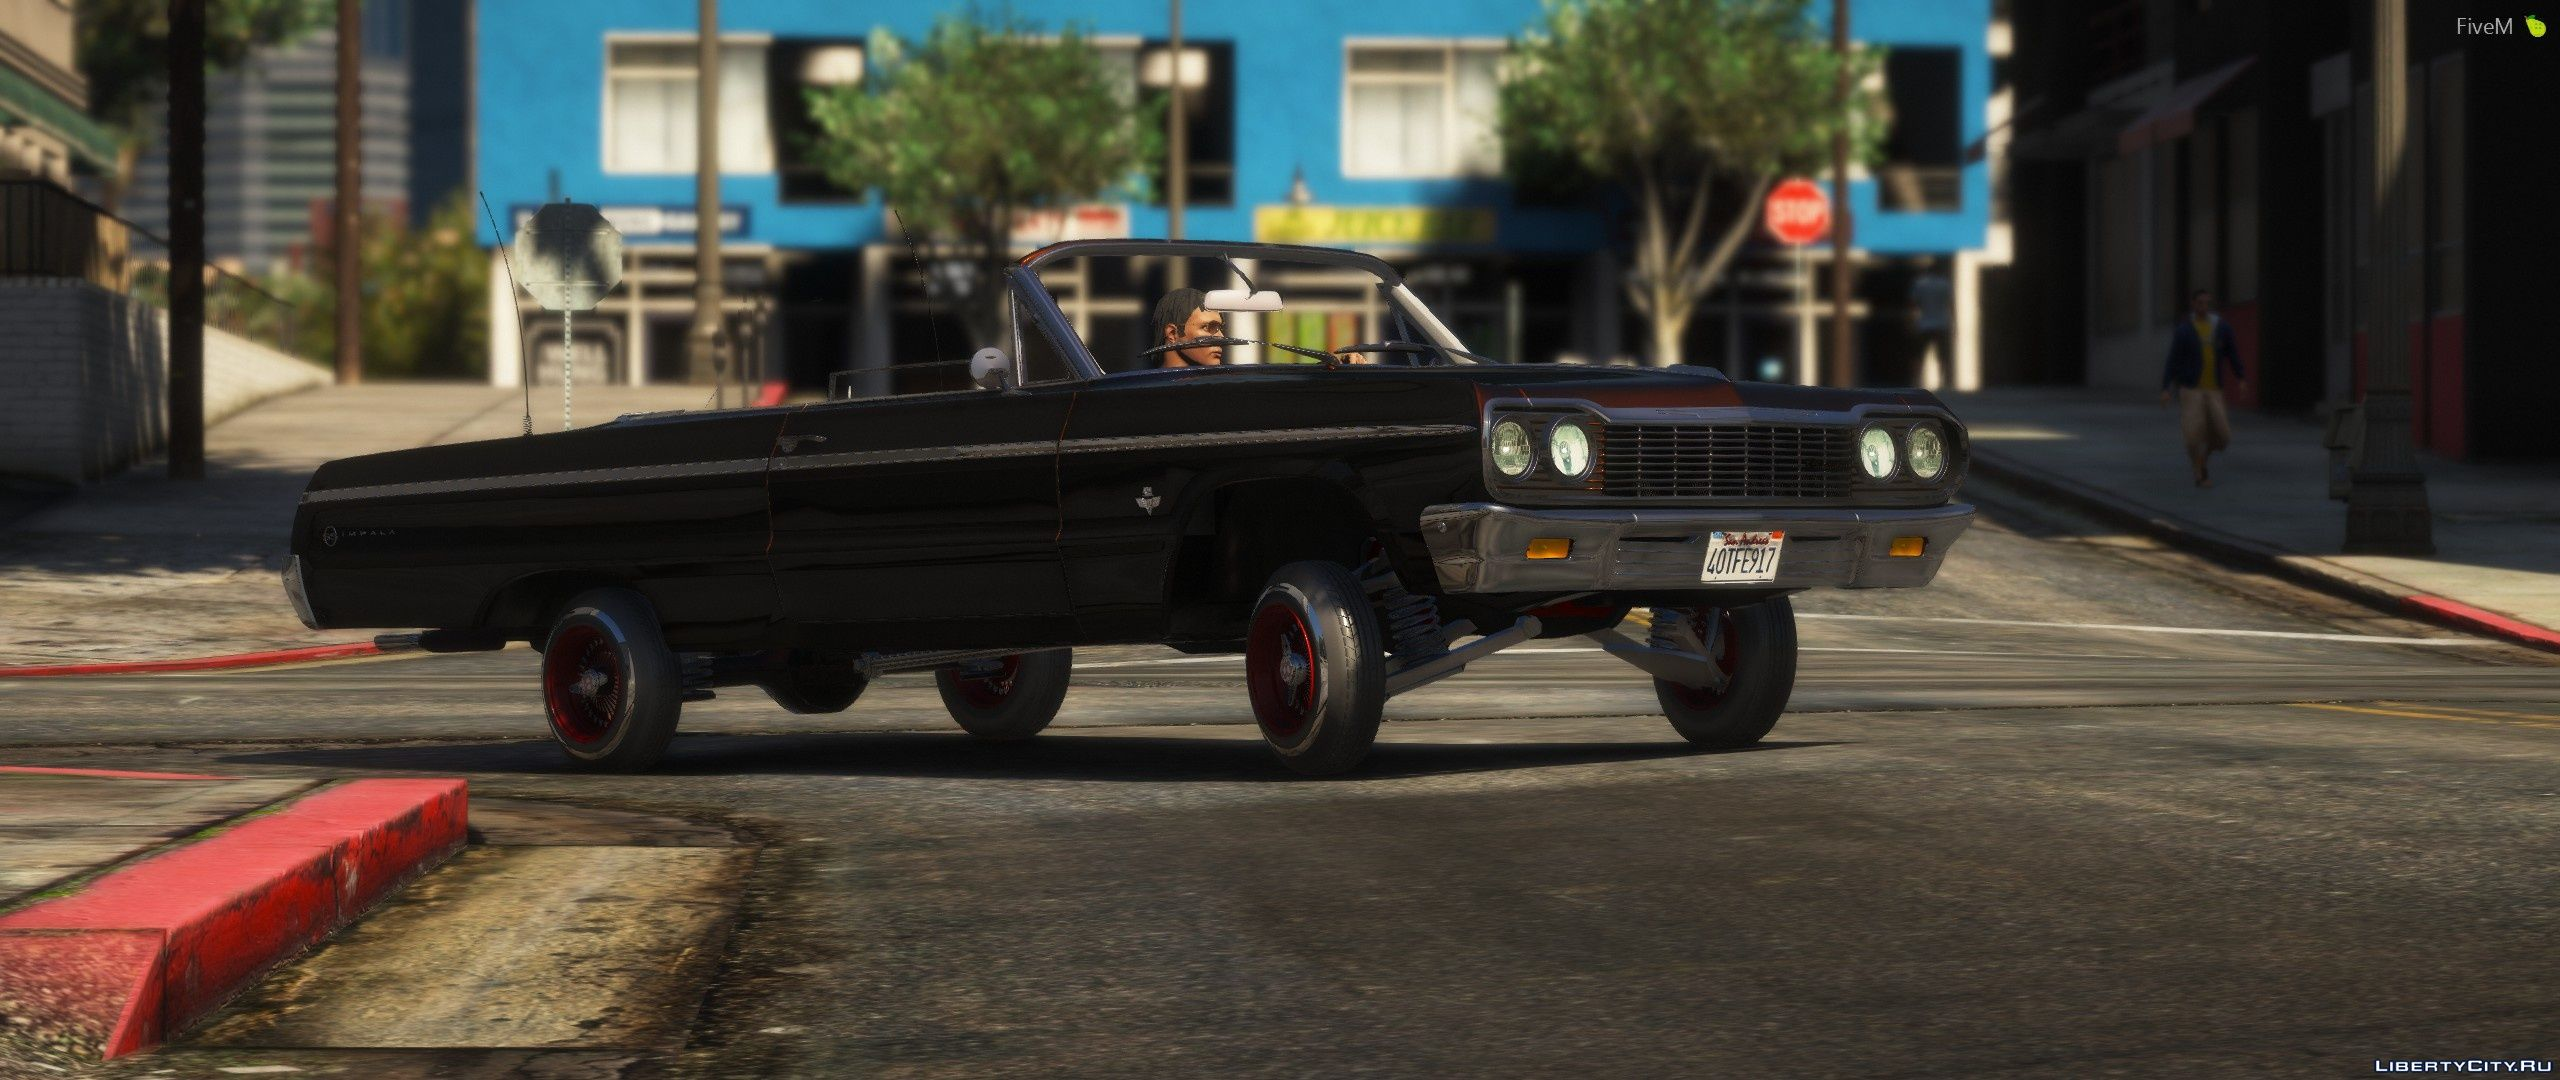 1964 Chevy Impala [FIVE M ADDON] 1 0 for GTA 5